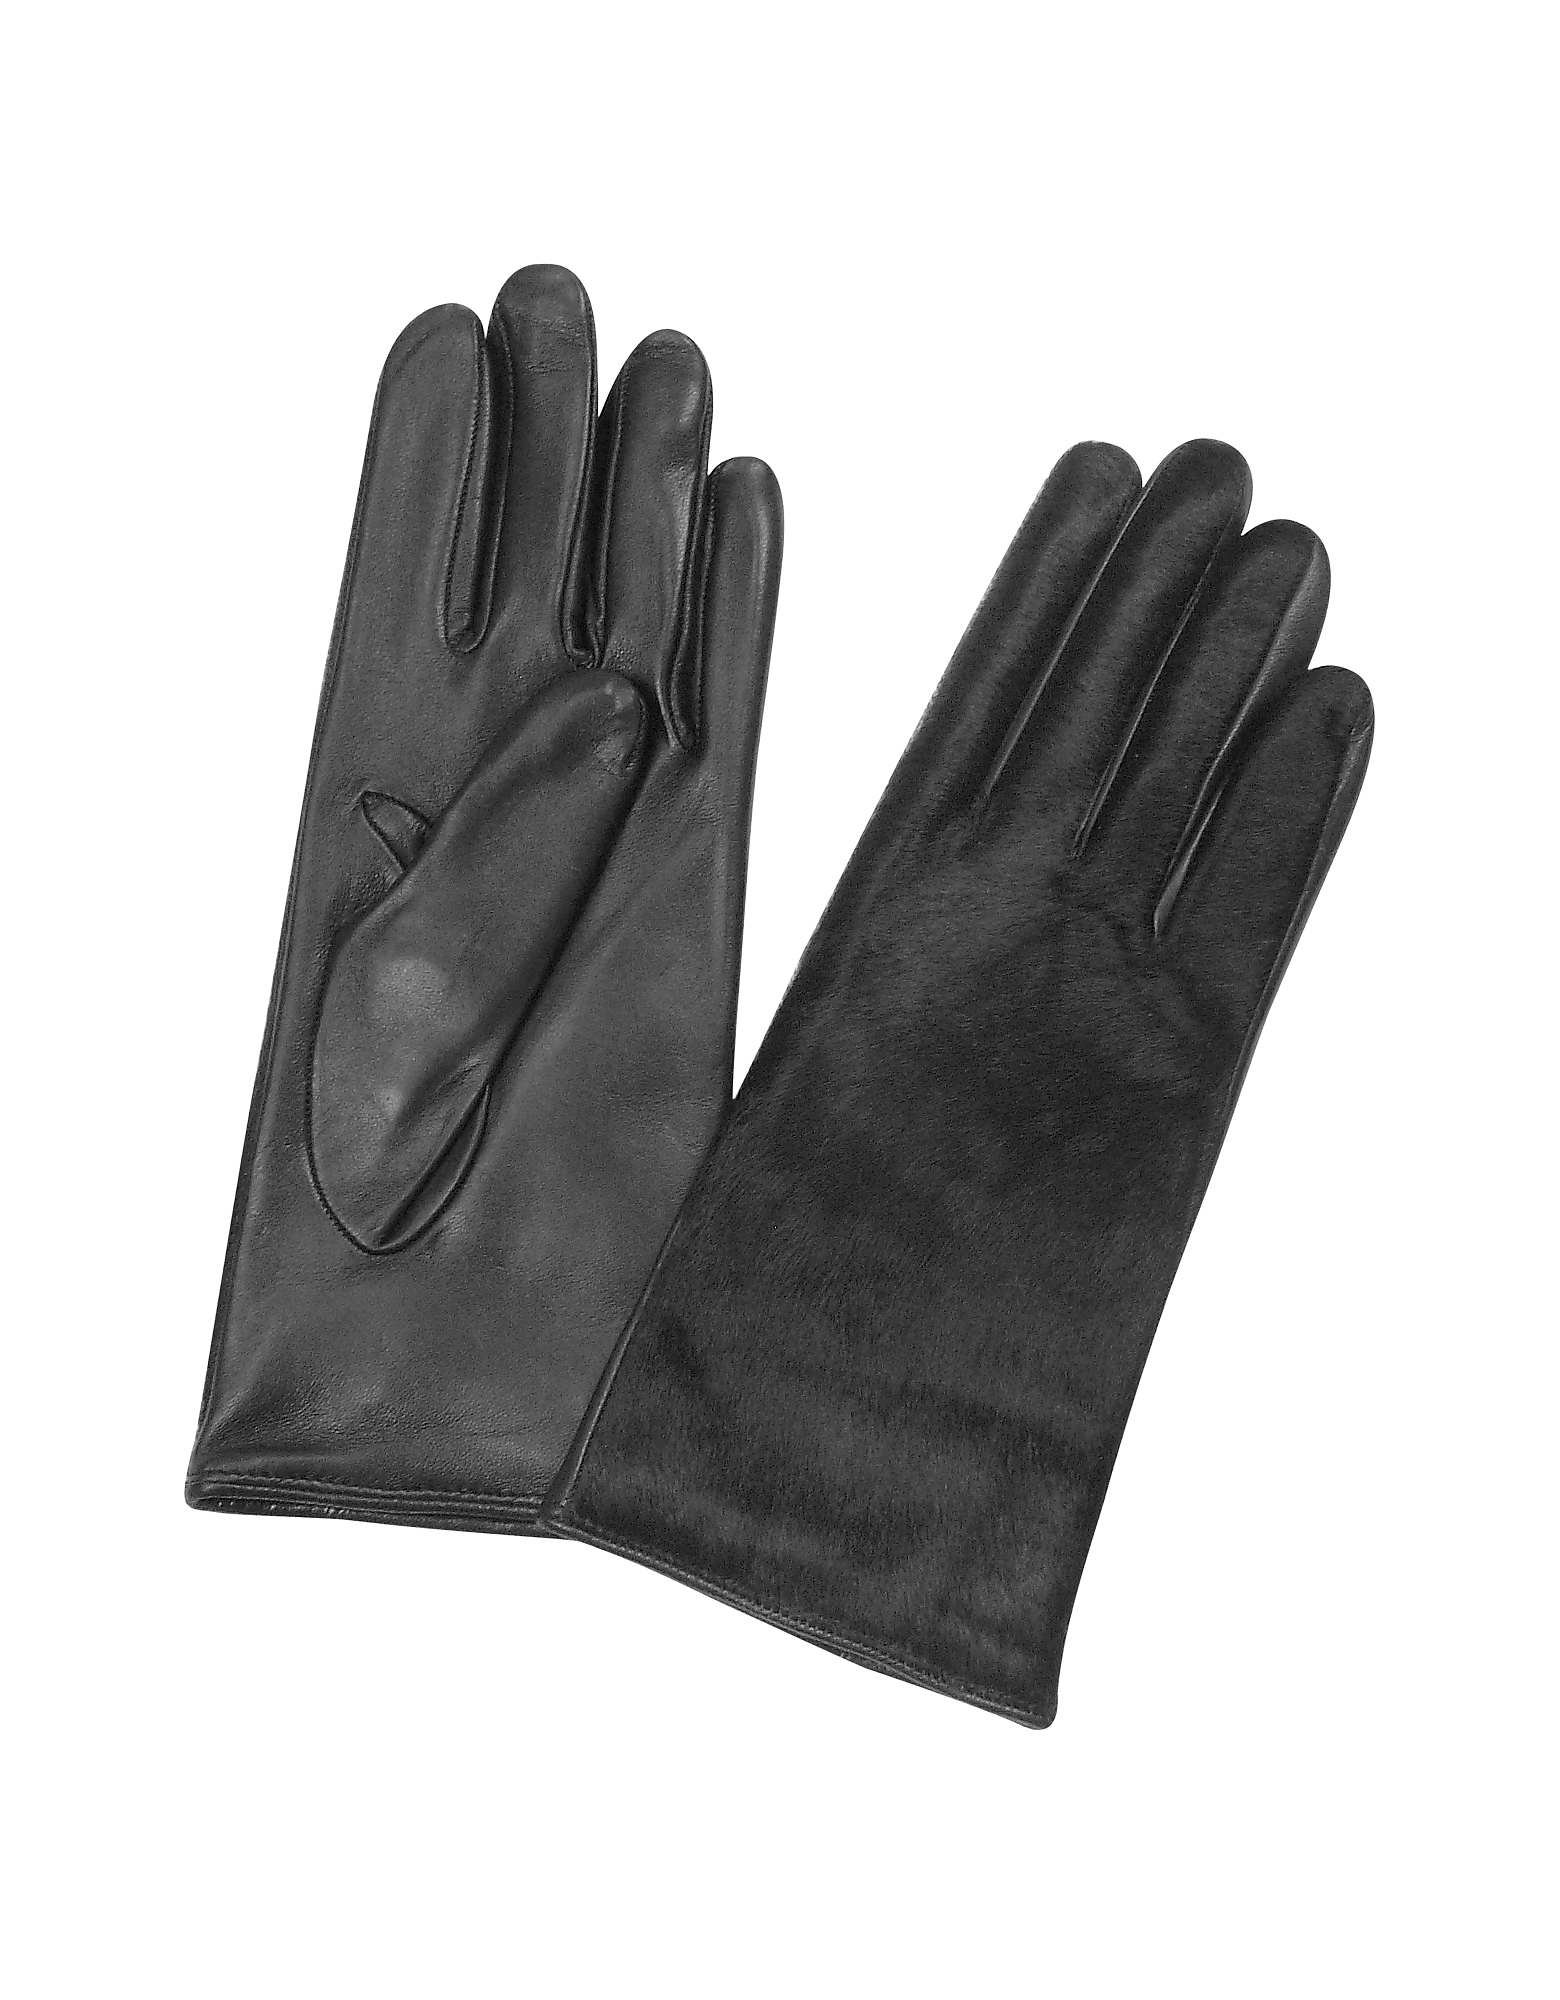 Forzieri Women's Gloves, Women's Black Pony Hair and Italian Nappa Leather Gloves